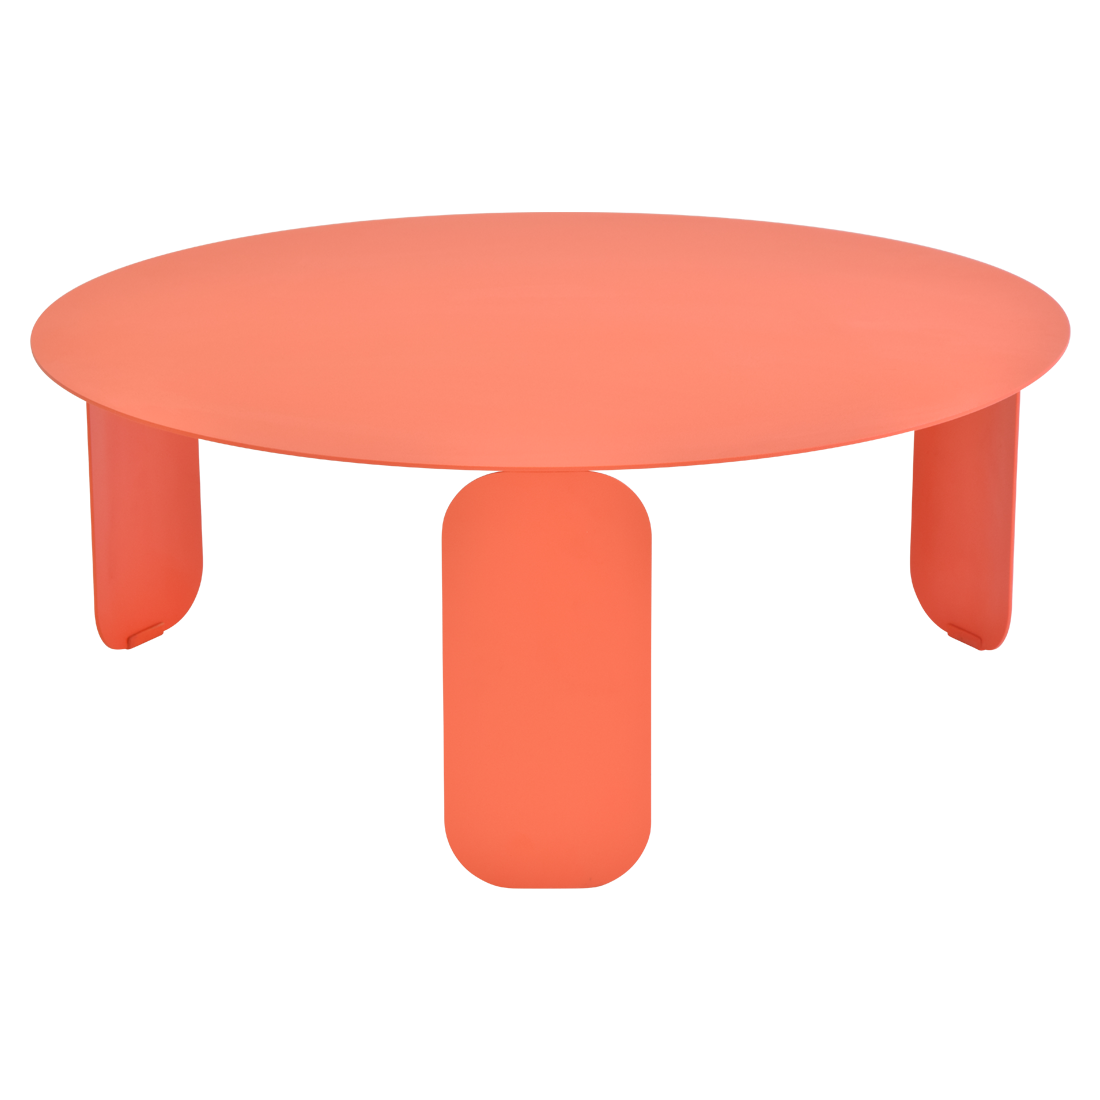 table basse metal, table basse design, table basse fermob, table basse rose